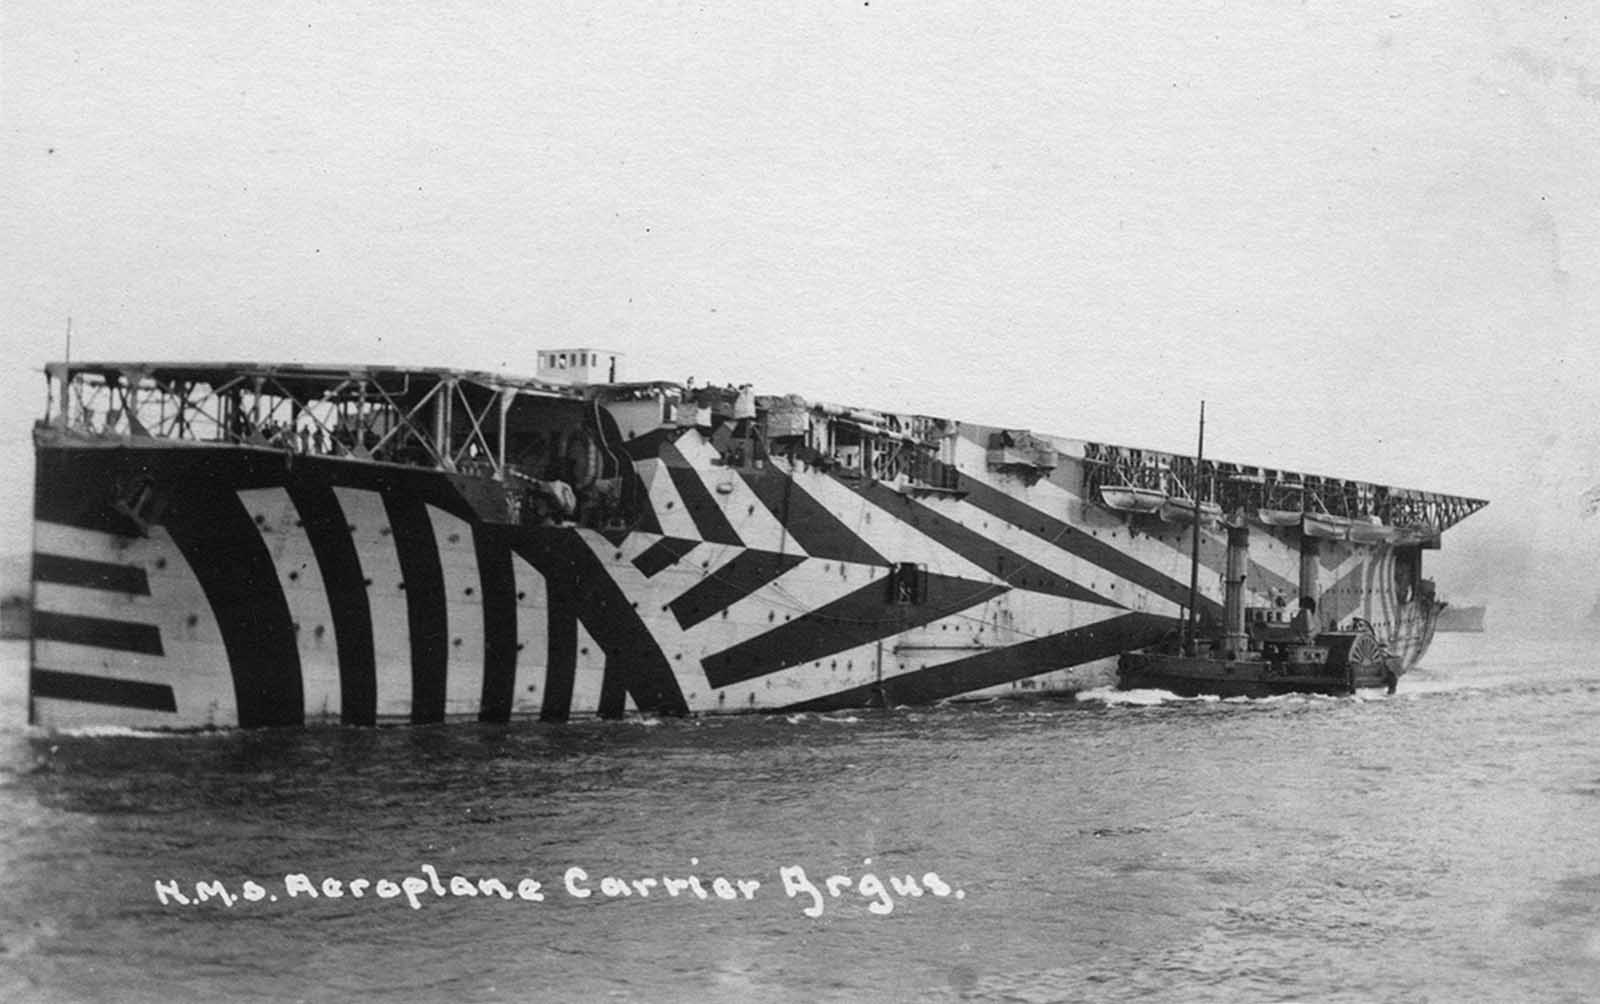 he British Aircraft Carrier HMS Argus. Converted from an ocean liner, the Argus could carry 15-18 aircraft. Commissioned at the very end of WWI, the Argus did not see any combat. The ship's hull is painted in Dazzle camouflage. Dazzle camouflage was widely used during the war years, designed to make it difficult for an enemy to estimate the range, heading, or speed of a ship, and make it a harder target - especially as seen from a submarine's periscope.